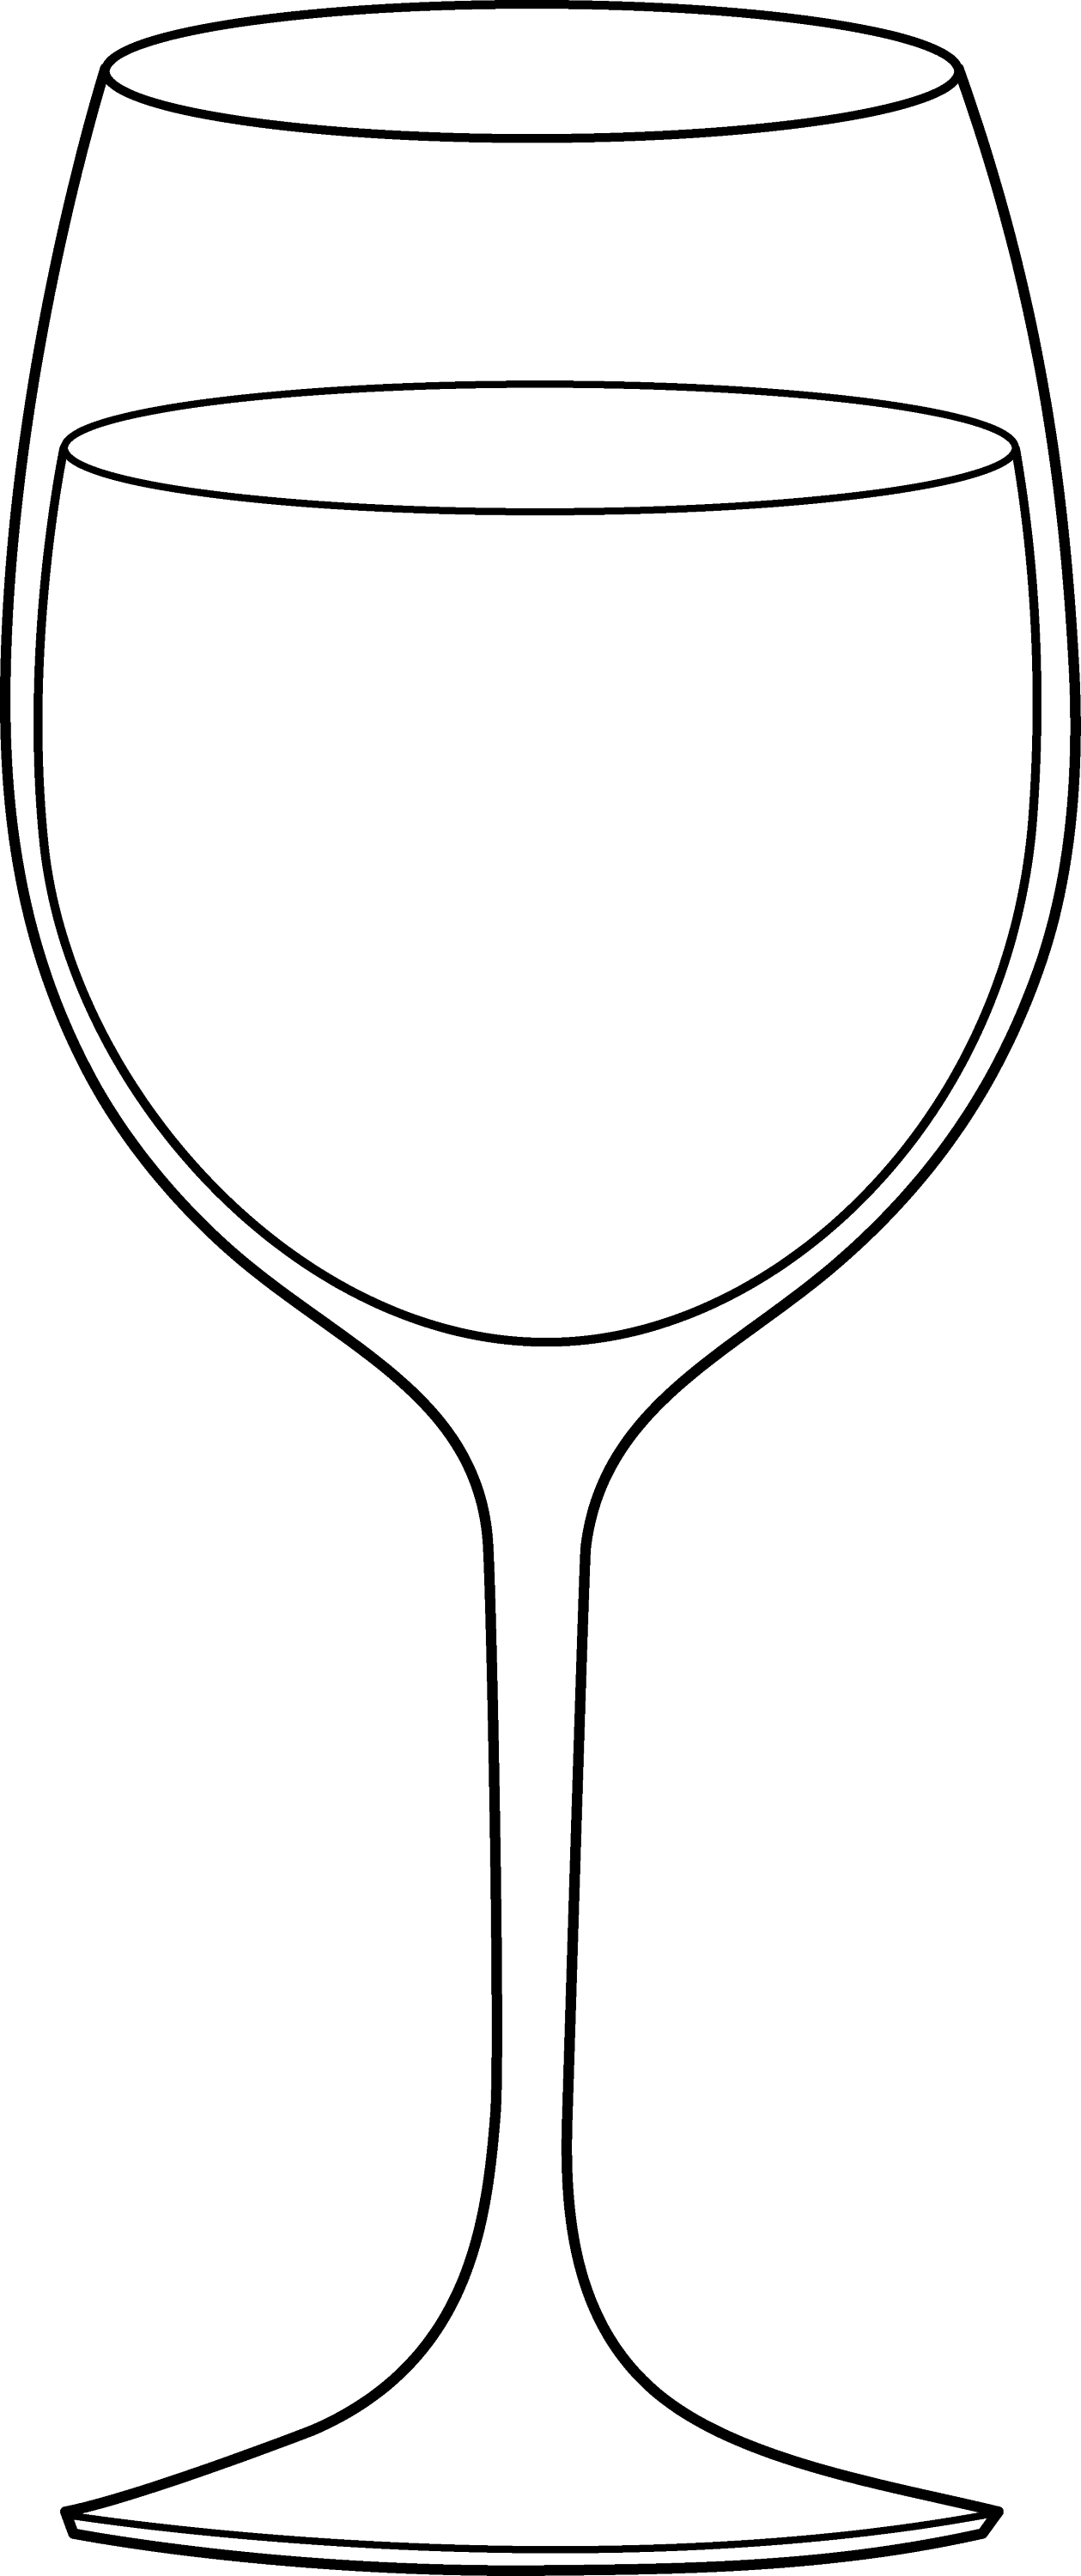 wine glass line art free clip art Cartoon Tennis Racket Clip Art Cartoon Tennis Racket Clip Art